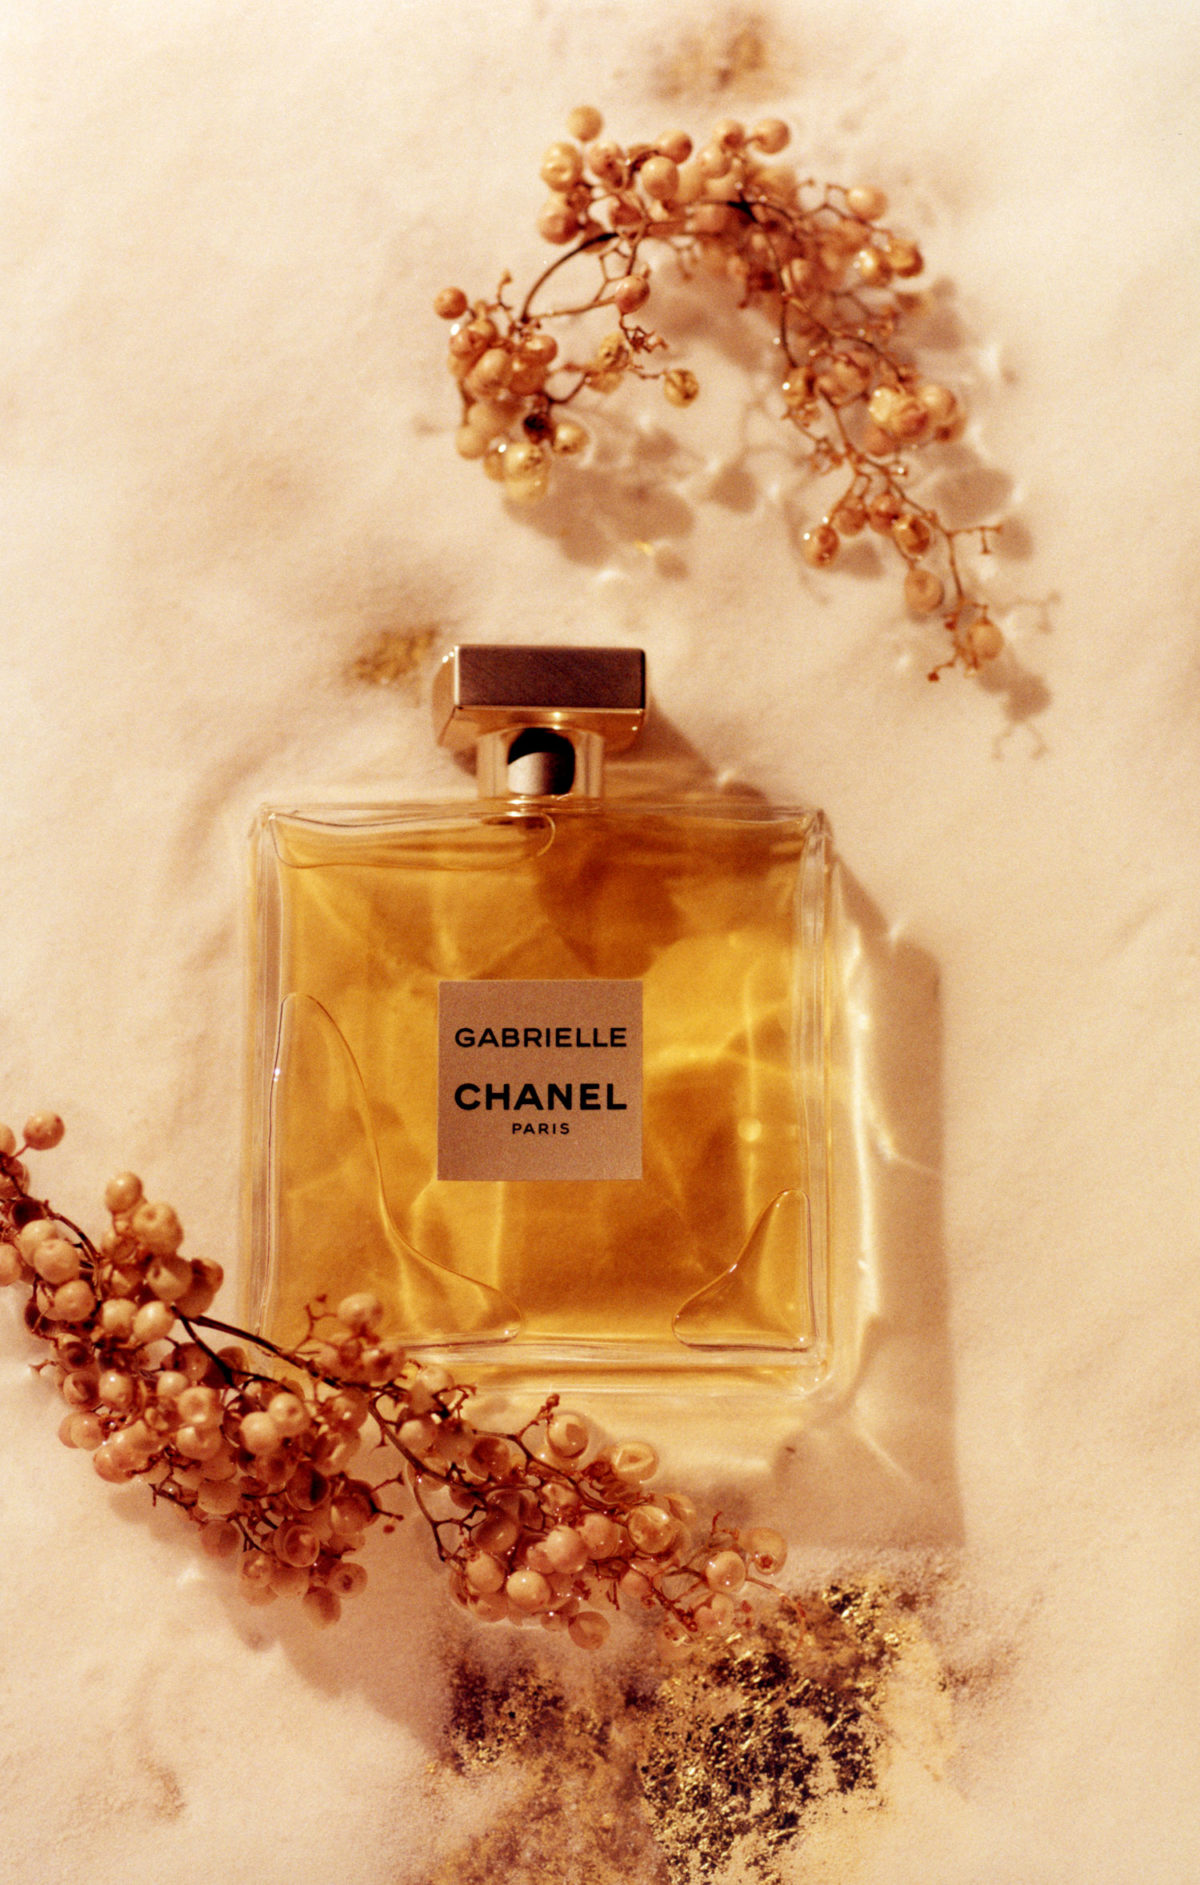 THE SCENT OF MEMORIES – MATERIAL MAGAZINE'S FAVOURITE PERFUMES